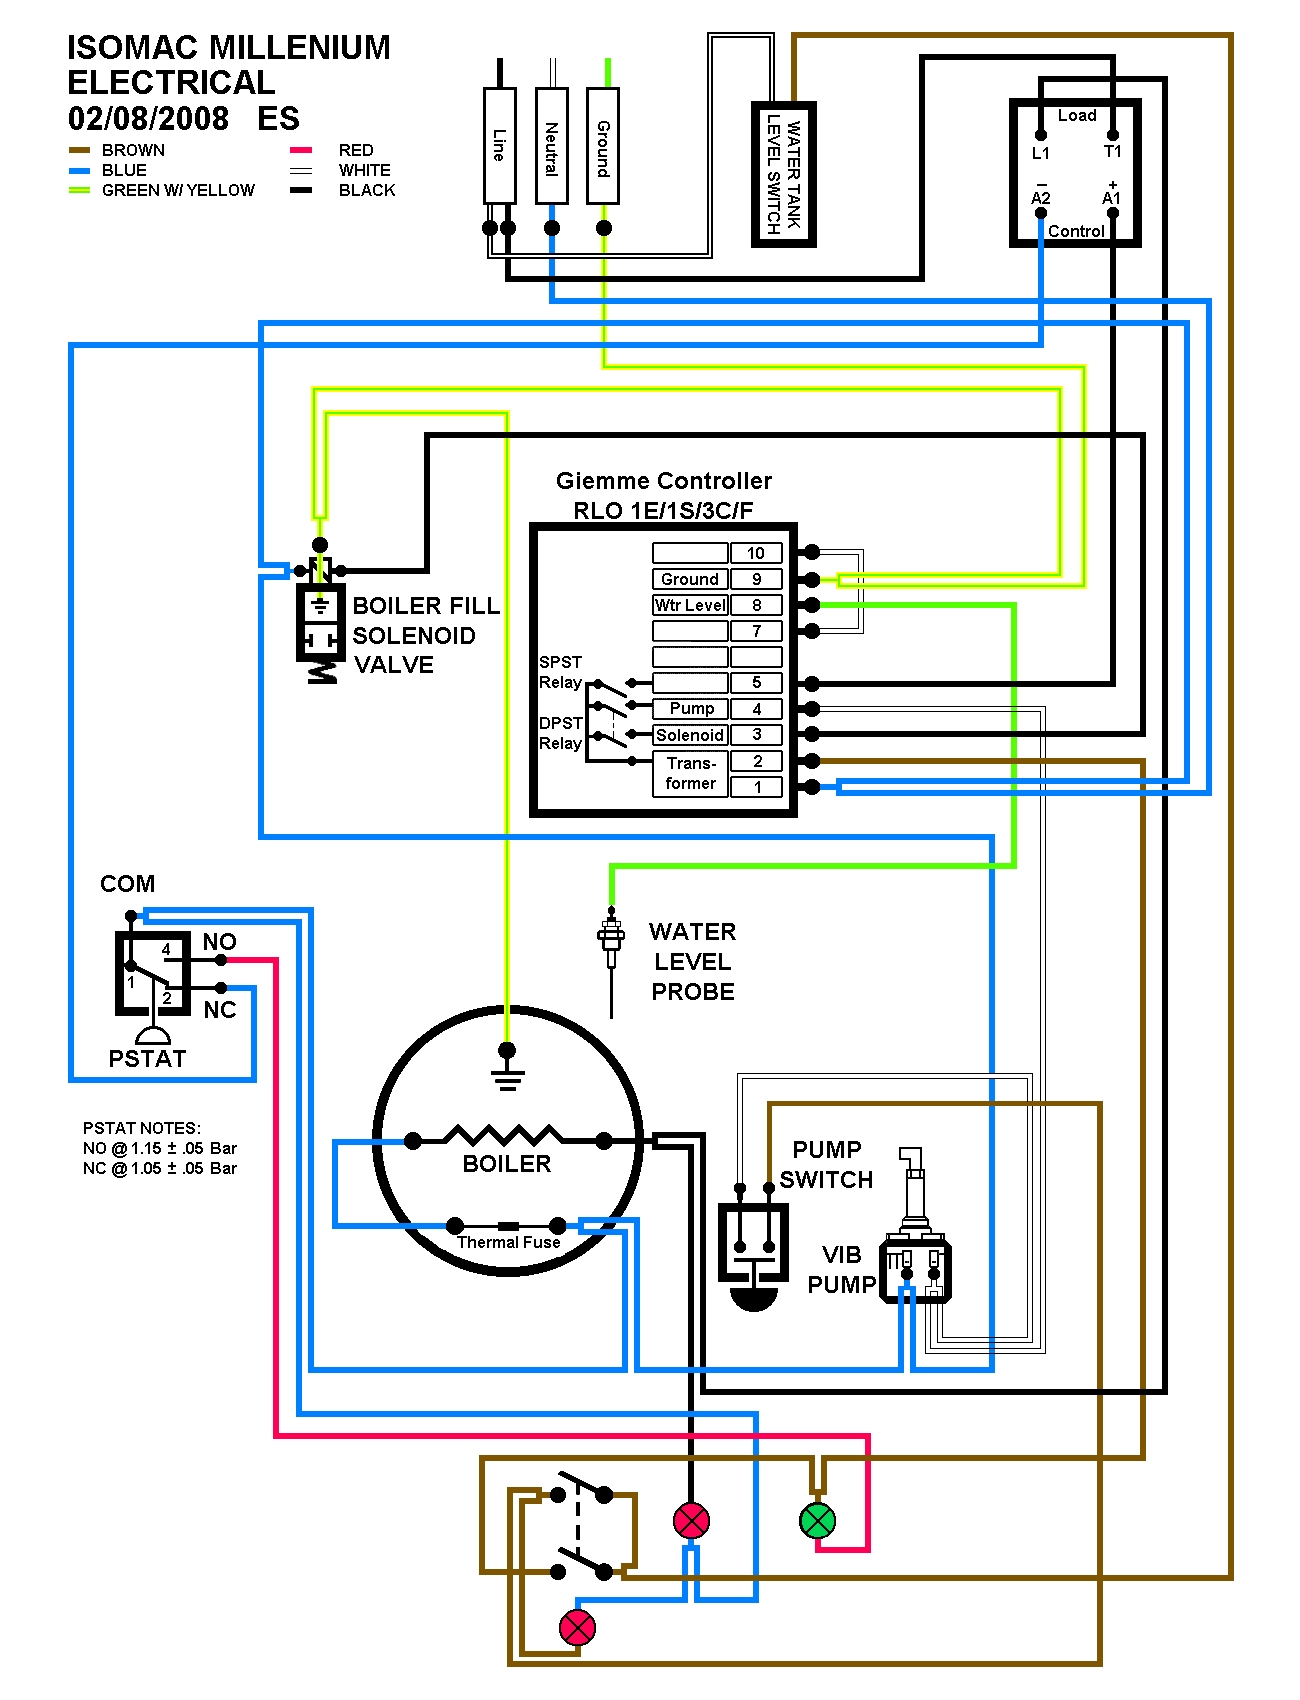 hight resolution of eric s isomac wiring diagram coffeegeek espresso espresso machines